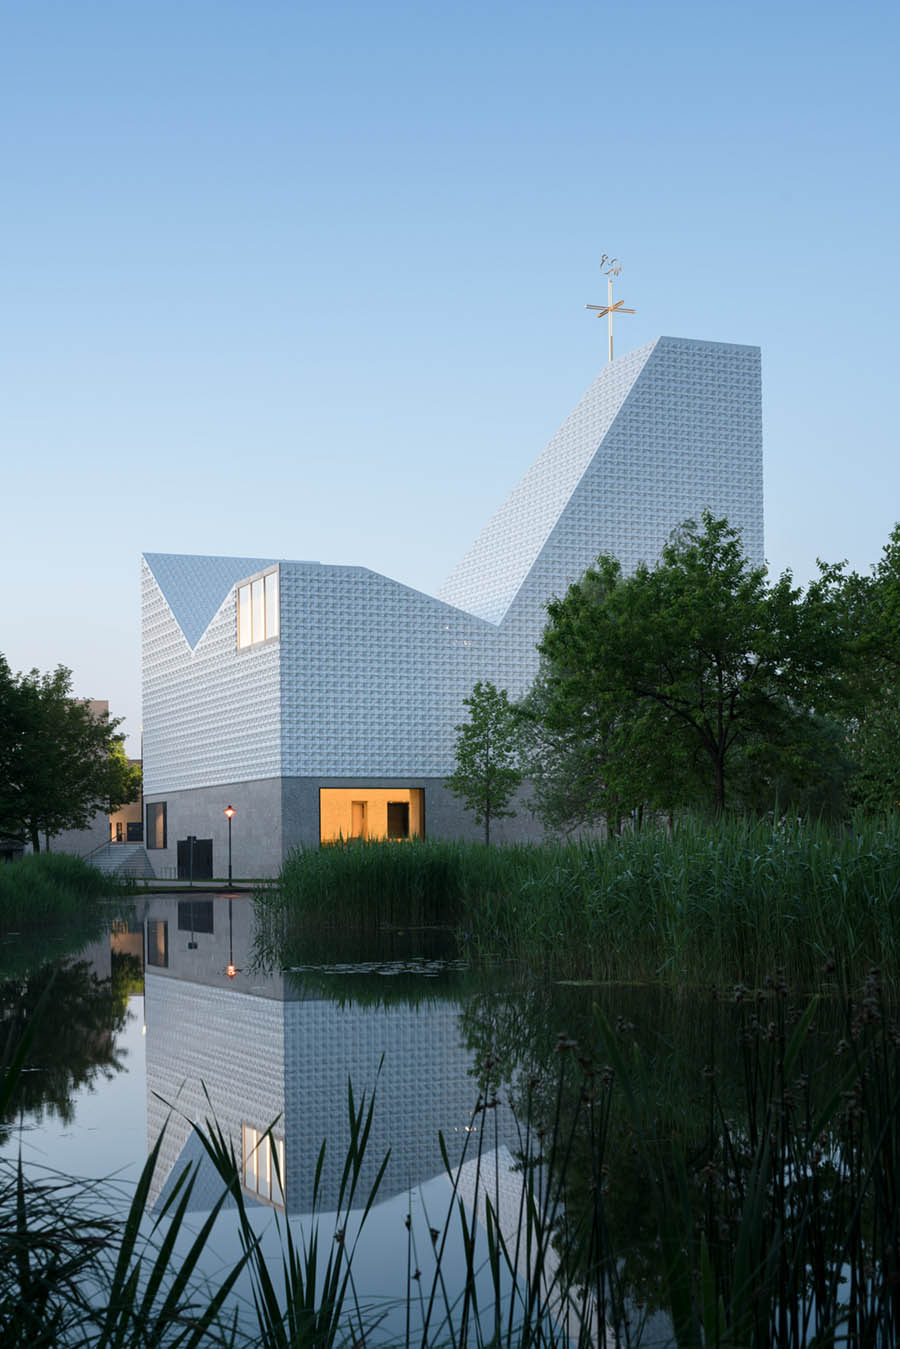 Church of Seliger Pater Rupert Mayer by Meck Architects